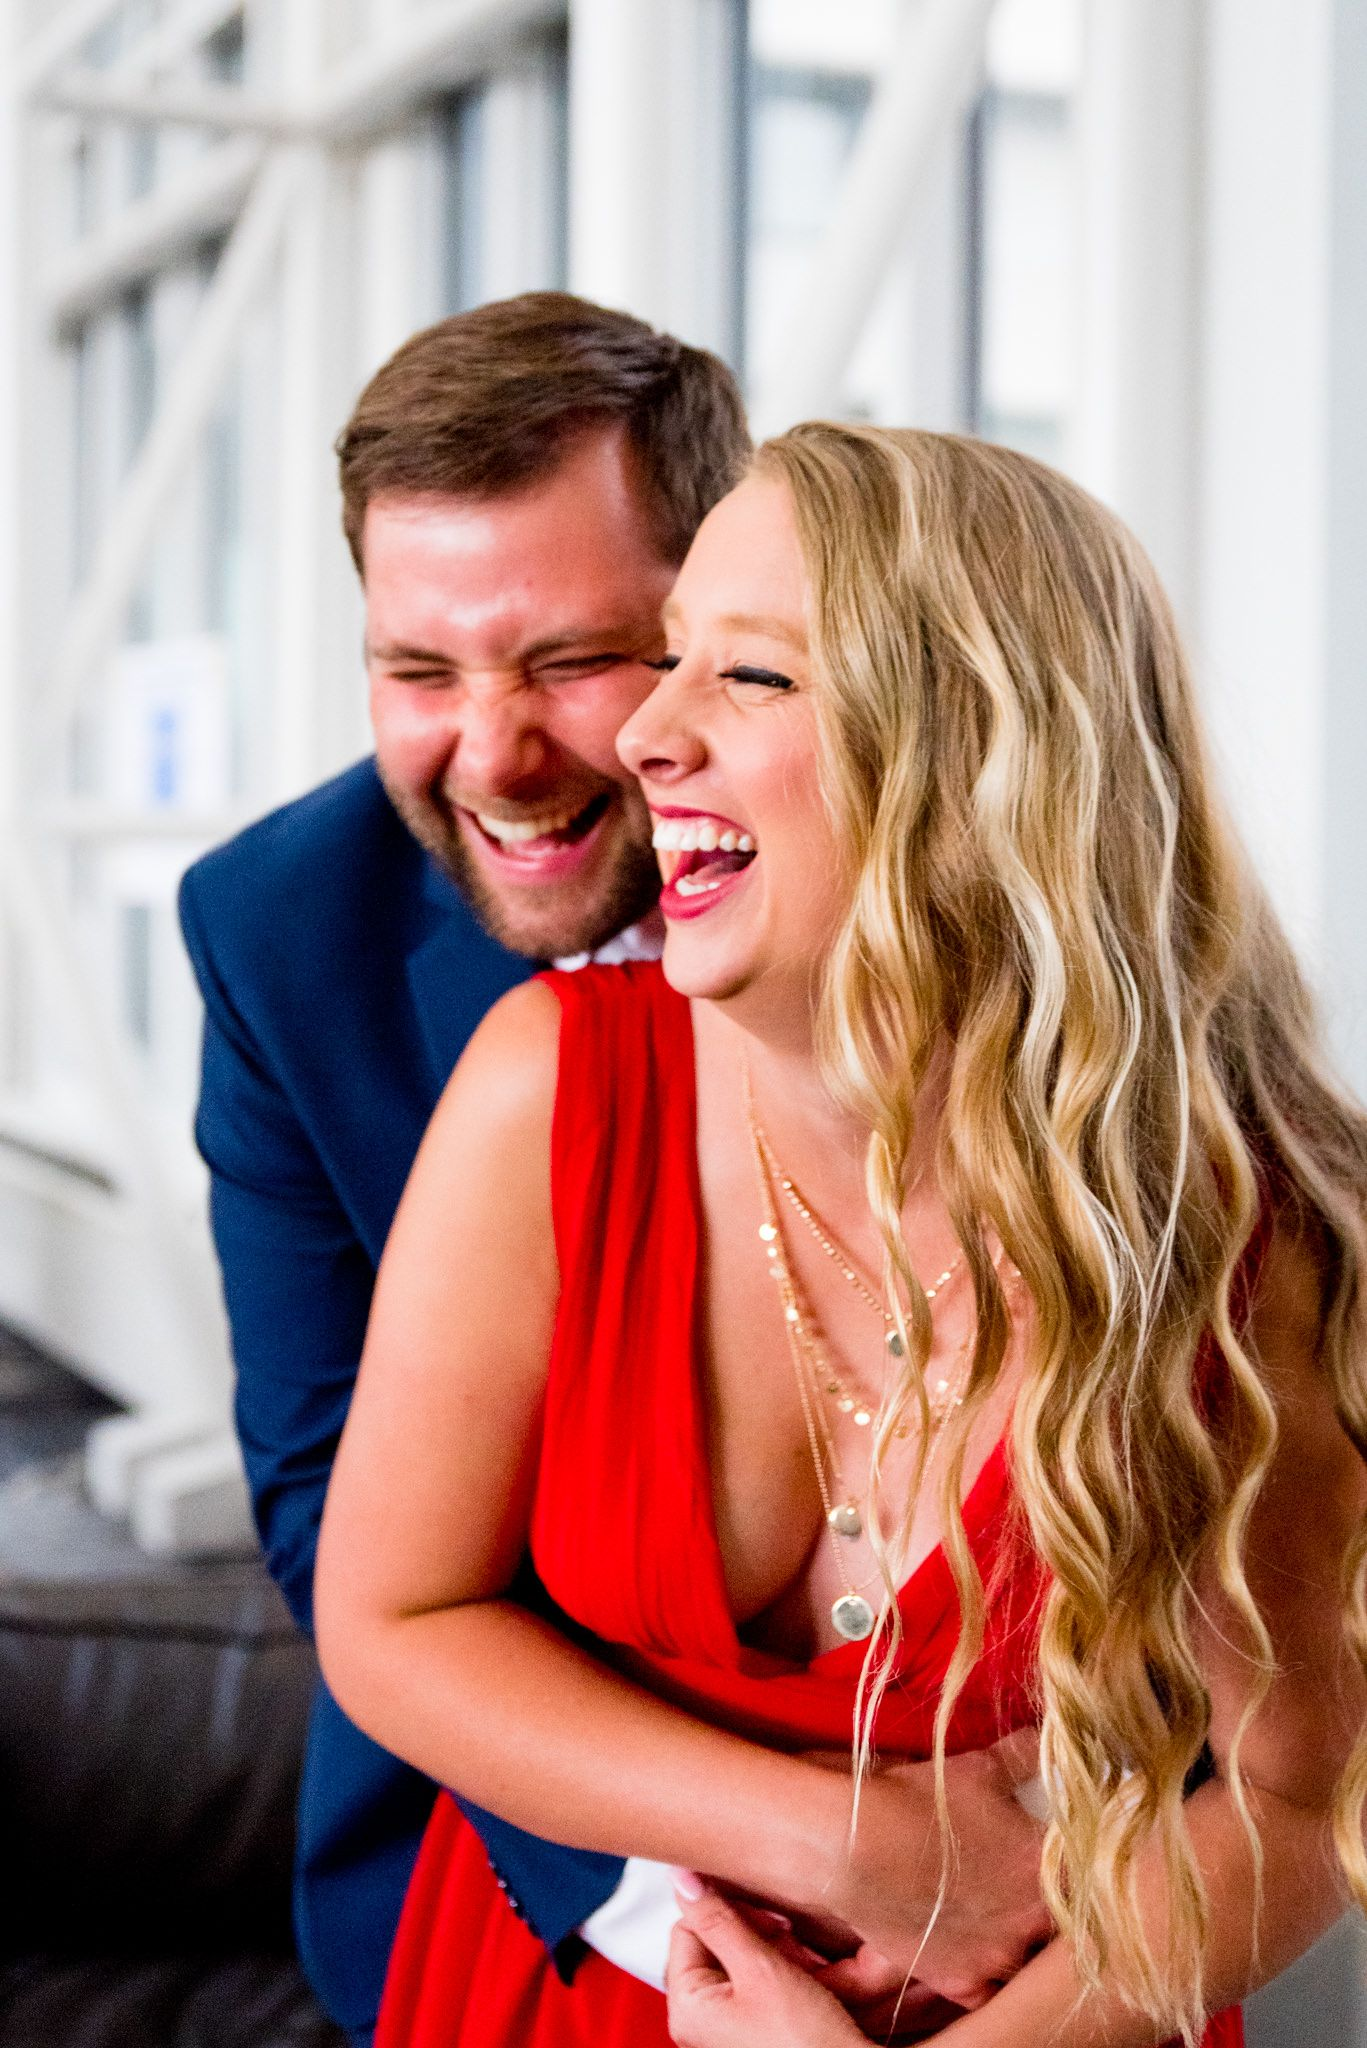 blonde woman in red dress laughing with fiance in navy suit at Galt House Hotel engagement pictures